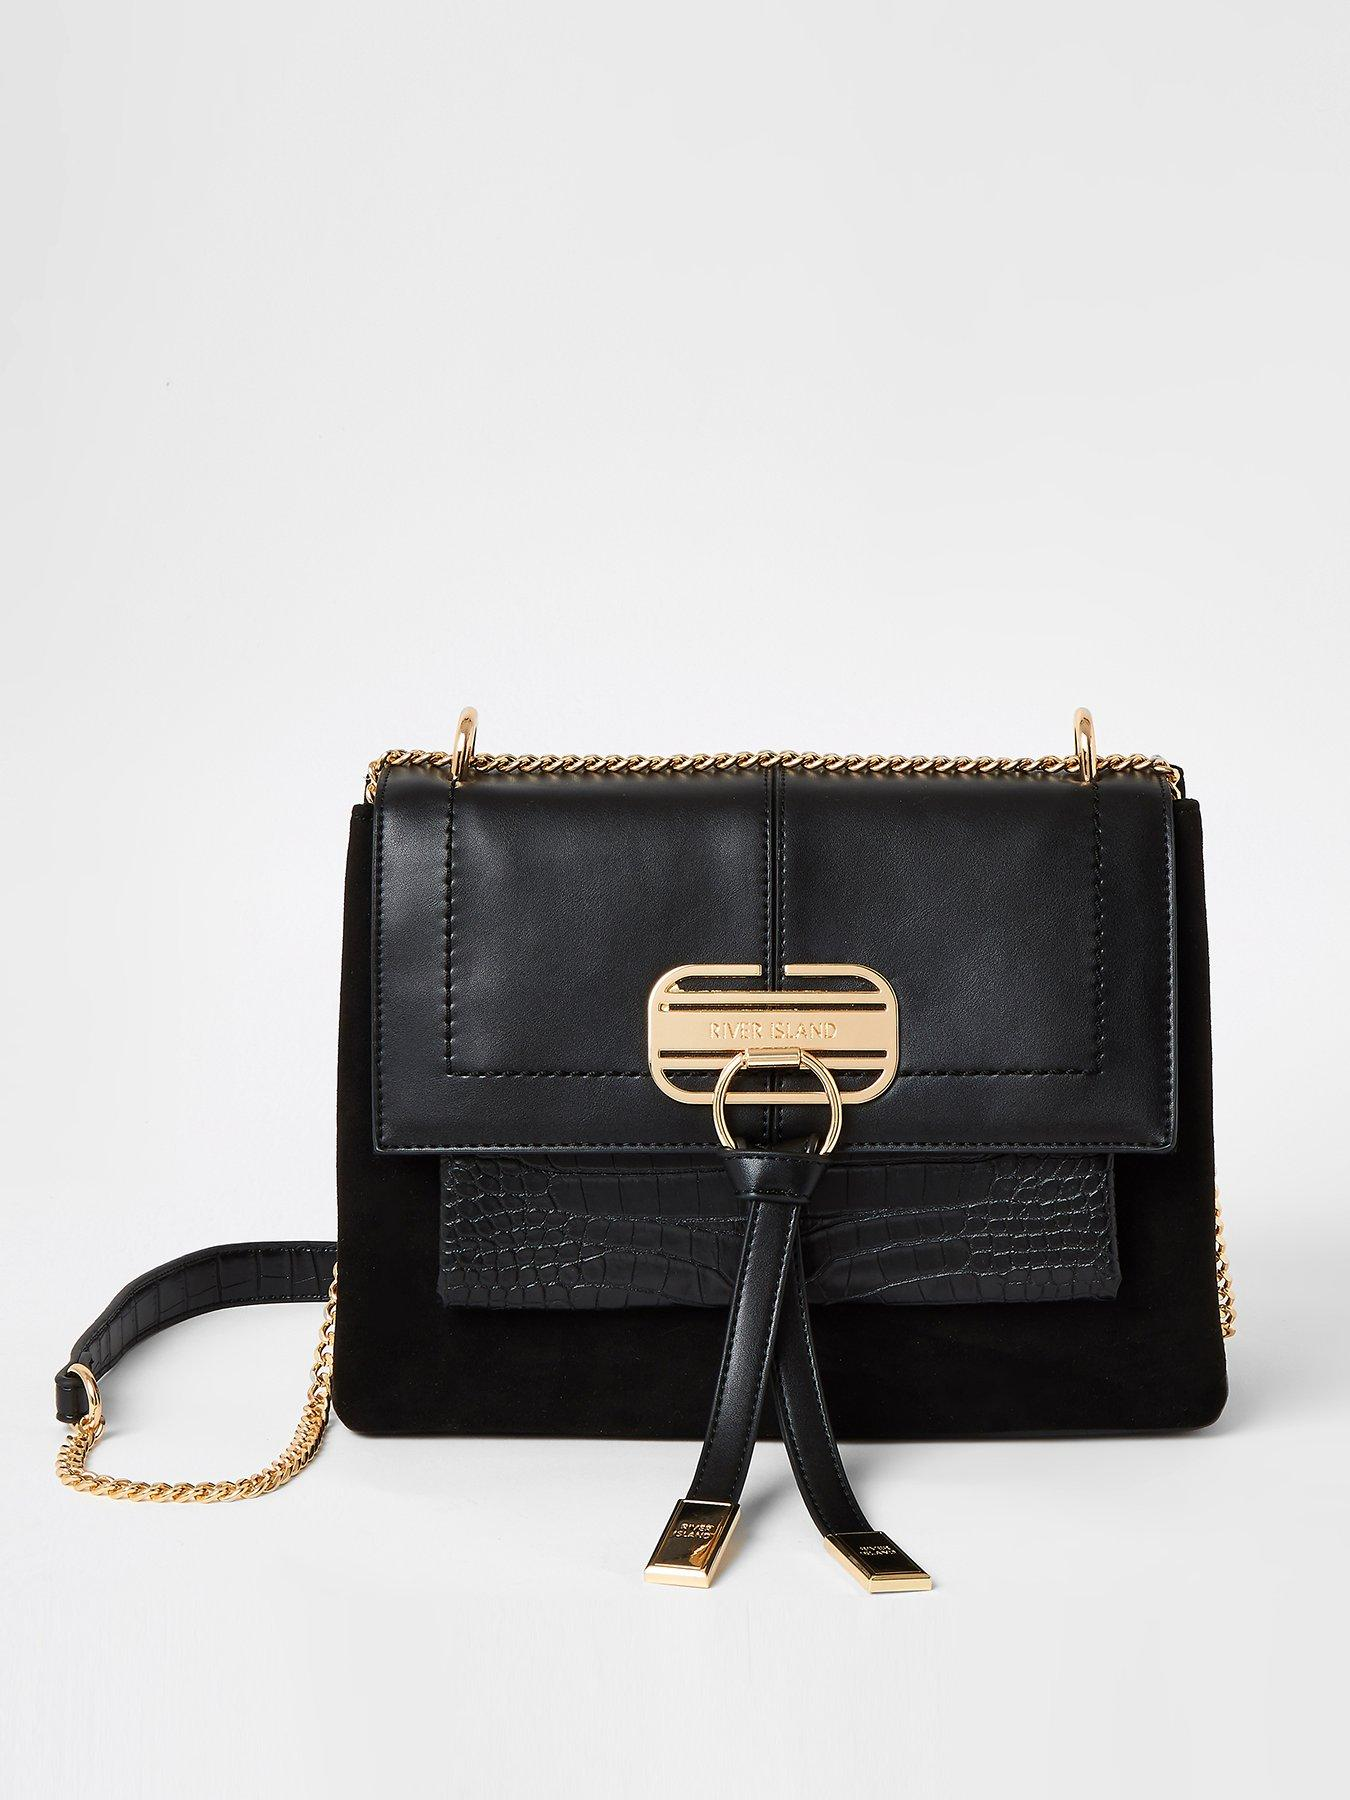 River Island Bag Gold Tone Lock Front  Cross Body Bag Brand New With Tag